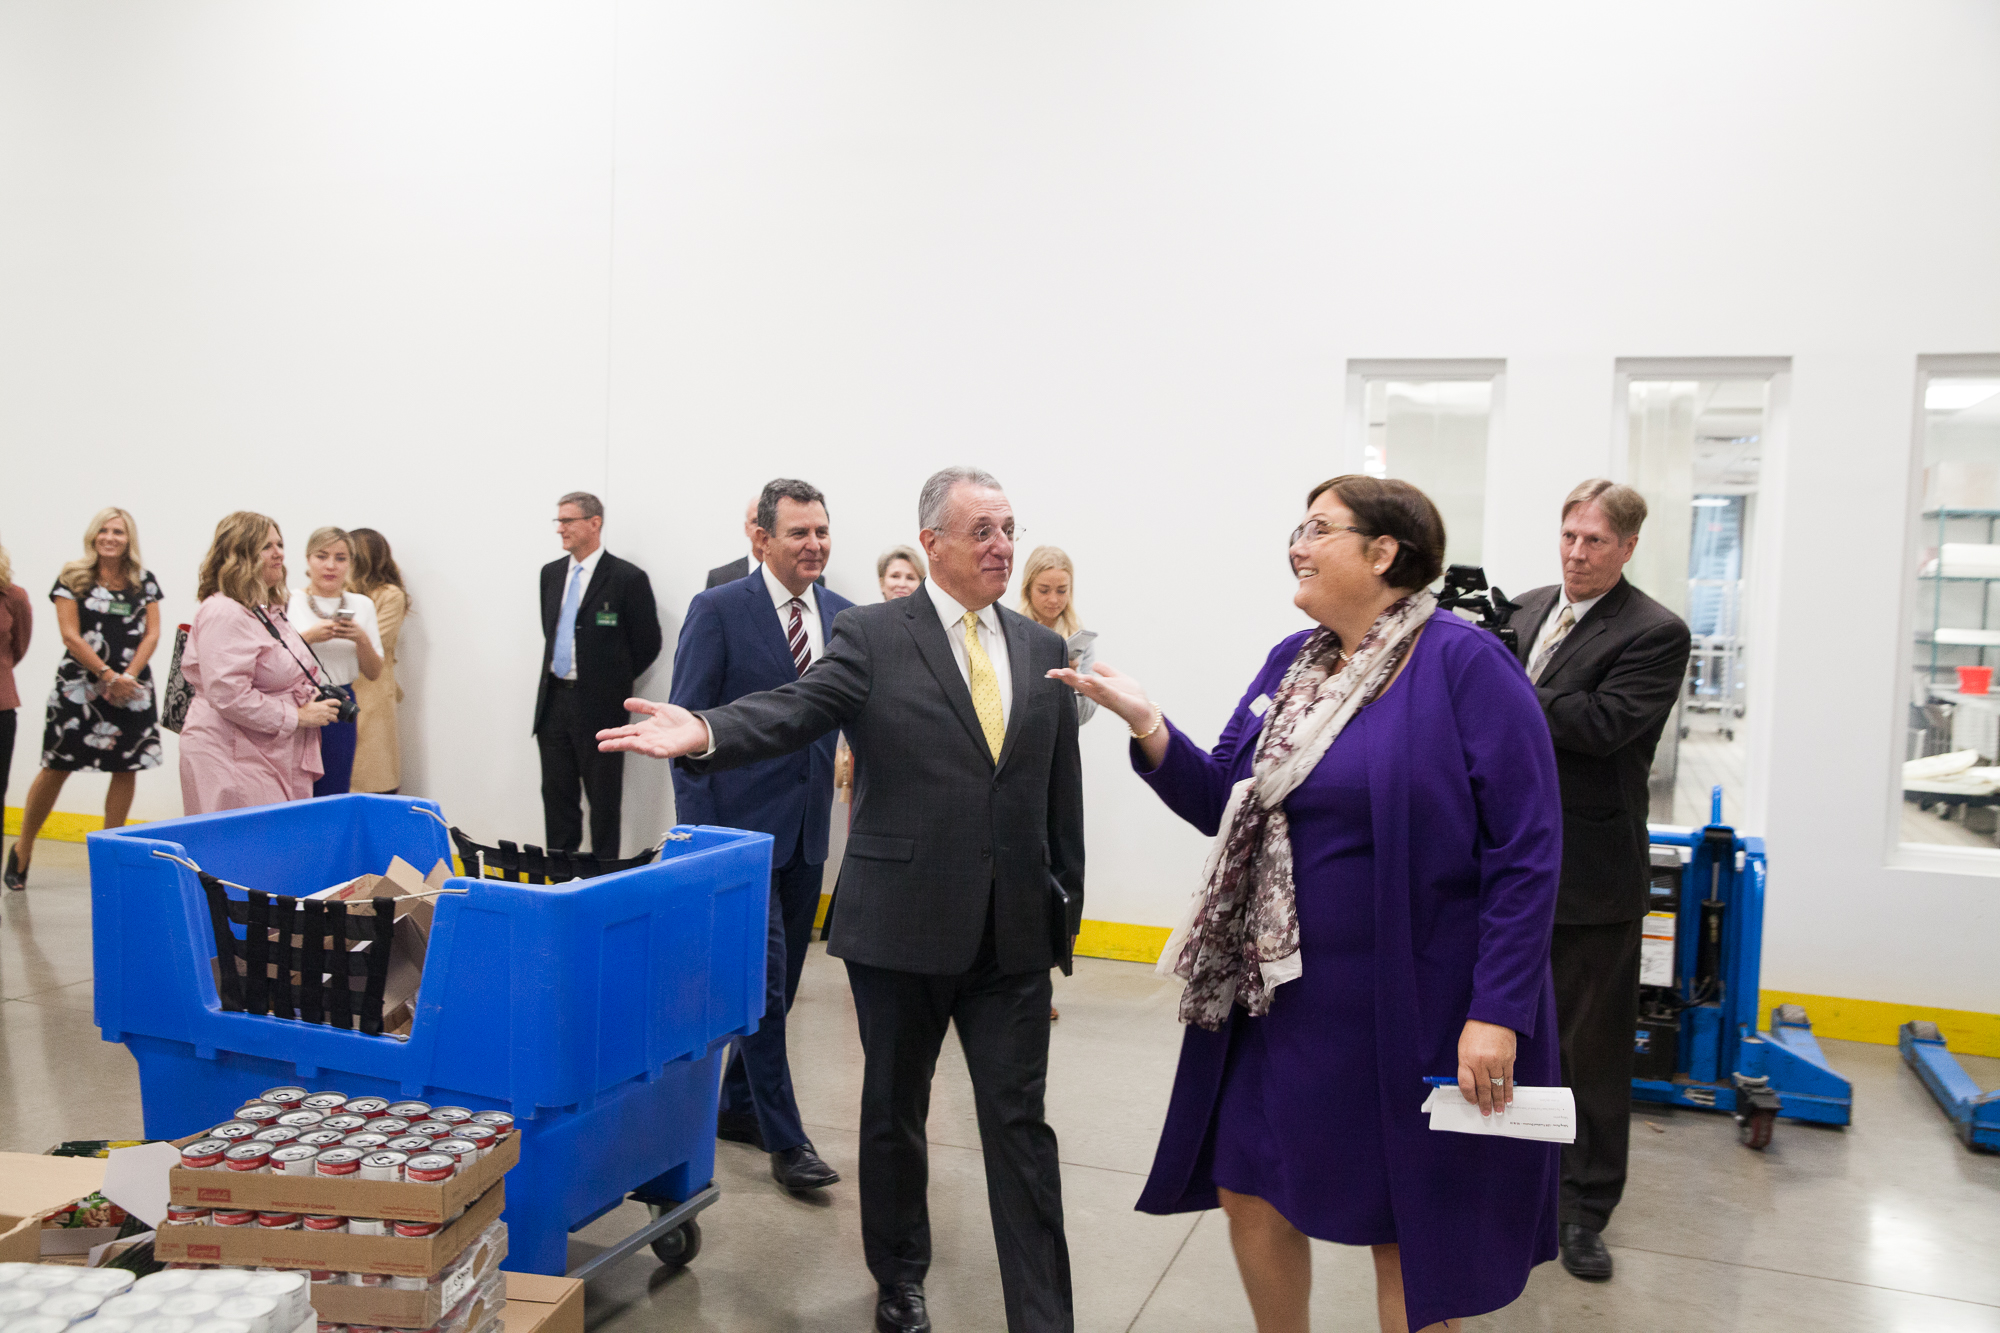 Elder Ulisses Soares is given a tour by Denise Blok, chief operating officer of the Central Texas Food Bank during a visit to their facilities on Oct. 18, 2019.